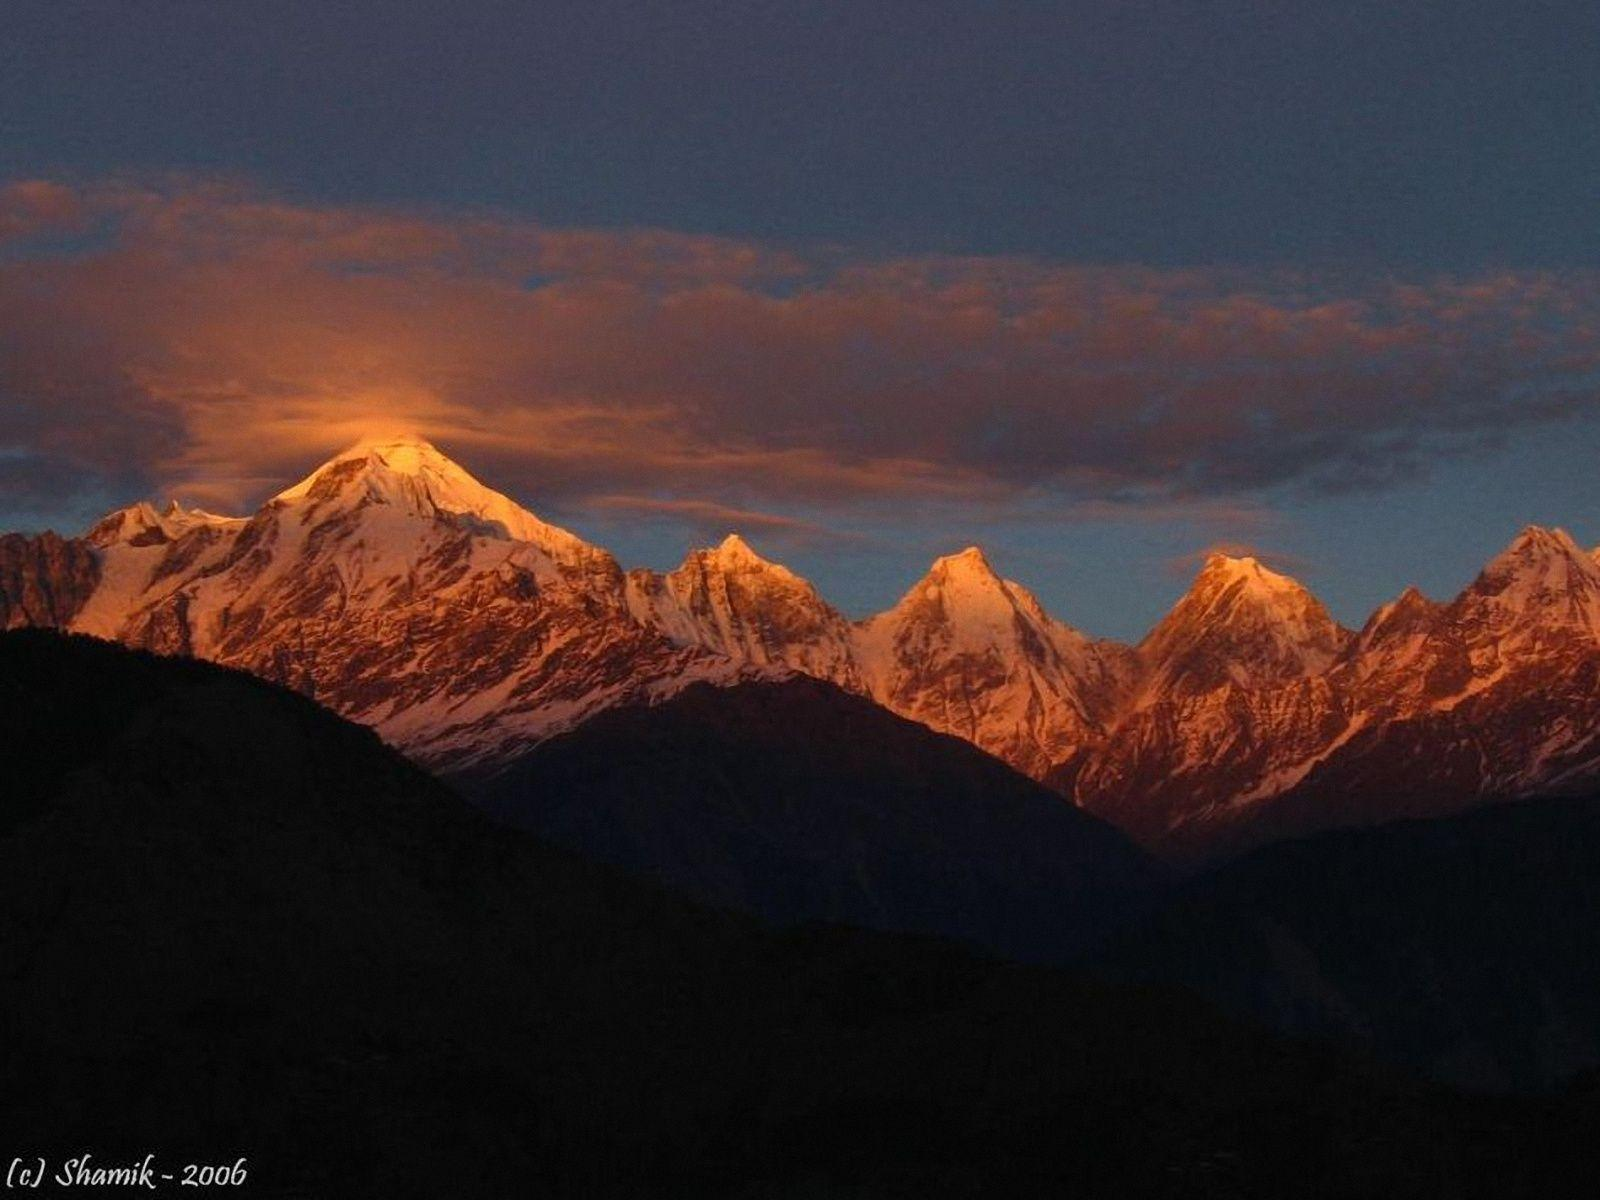 himalaya mountains hd wallpaper - photo #25